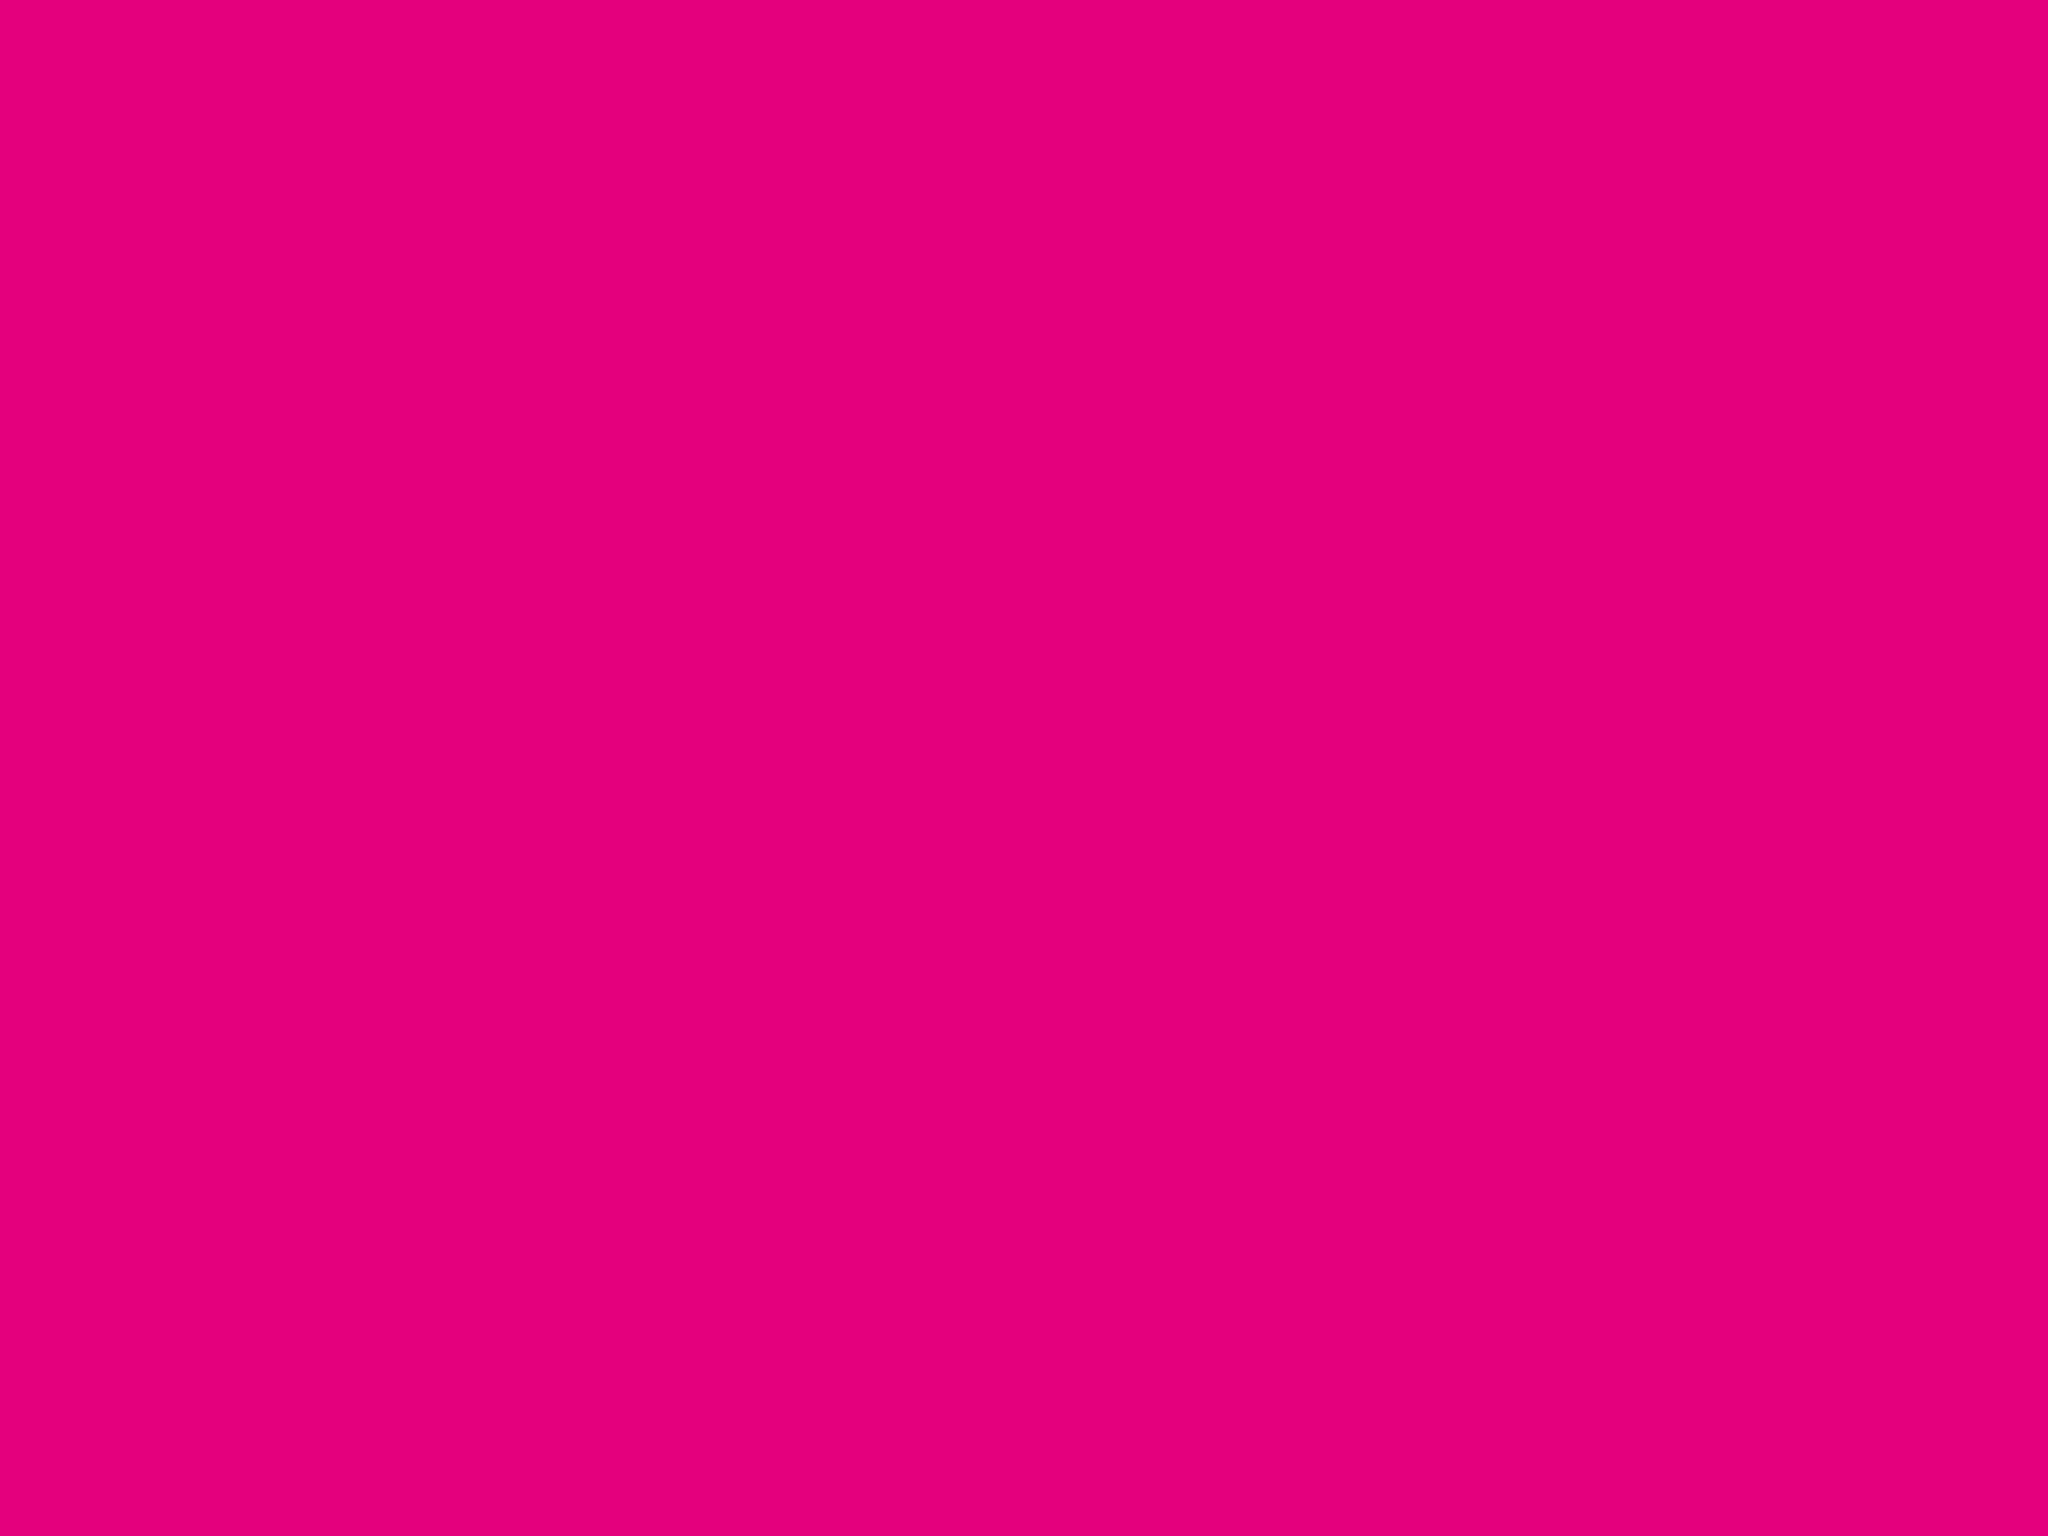 2048x1536 Mexican Pink Solid Color Background